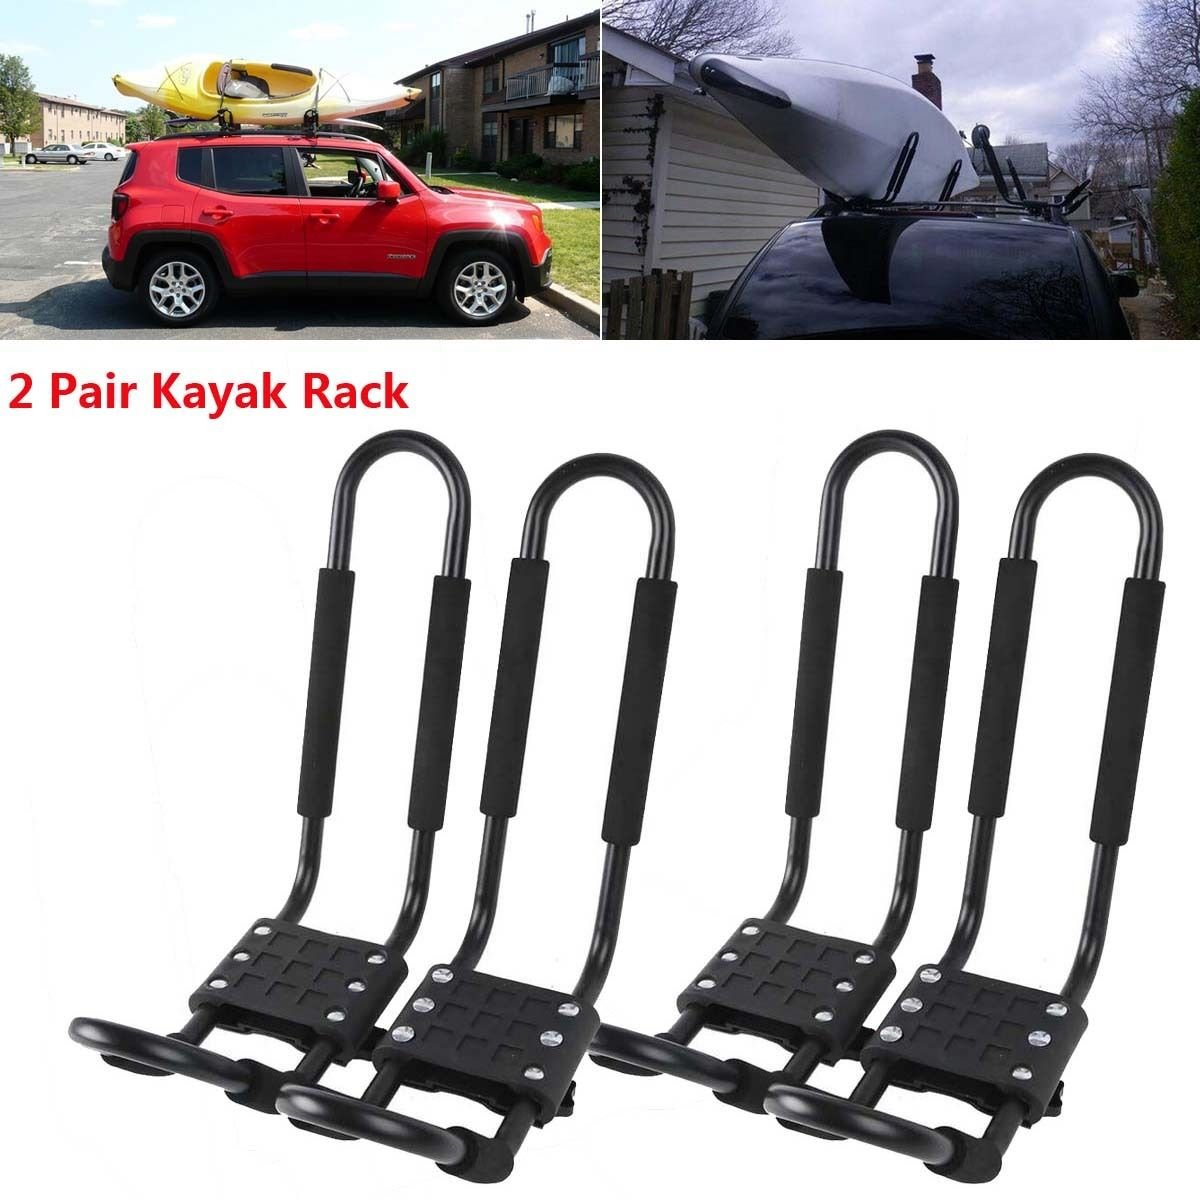 XMT-MOTO J-Bar 2 Pairs Universal Kayak Canoe Top Mount Carrier Roof Rack Boat SUV Van Car